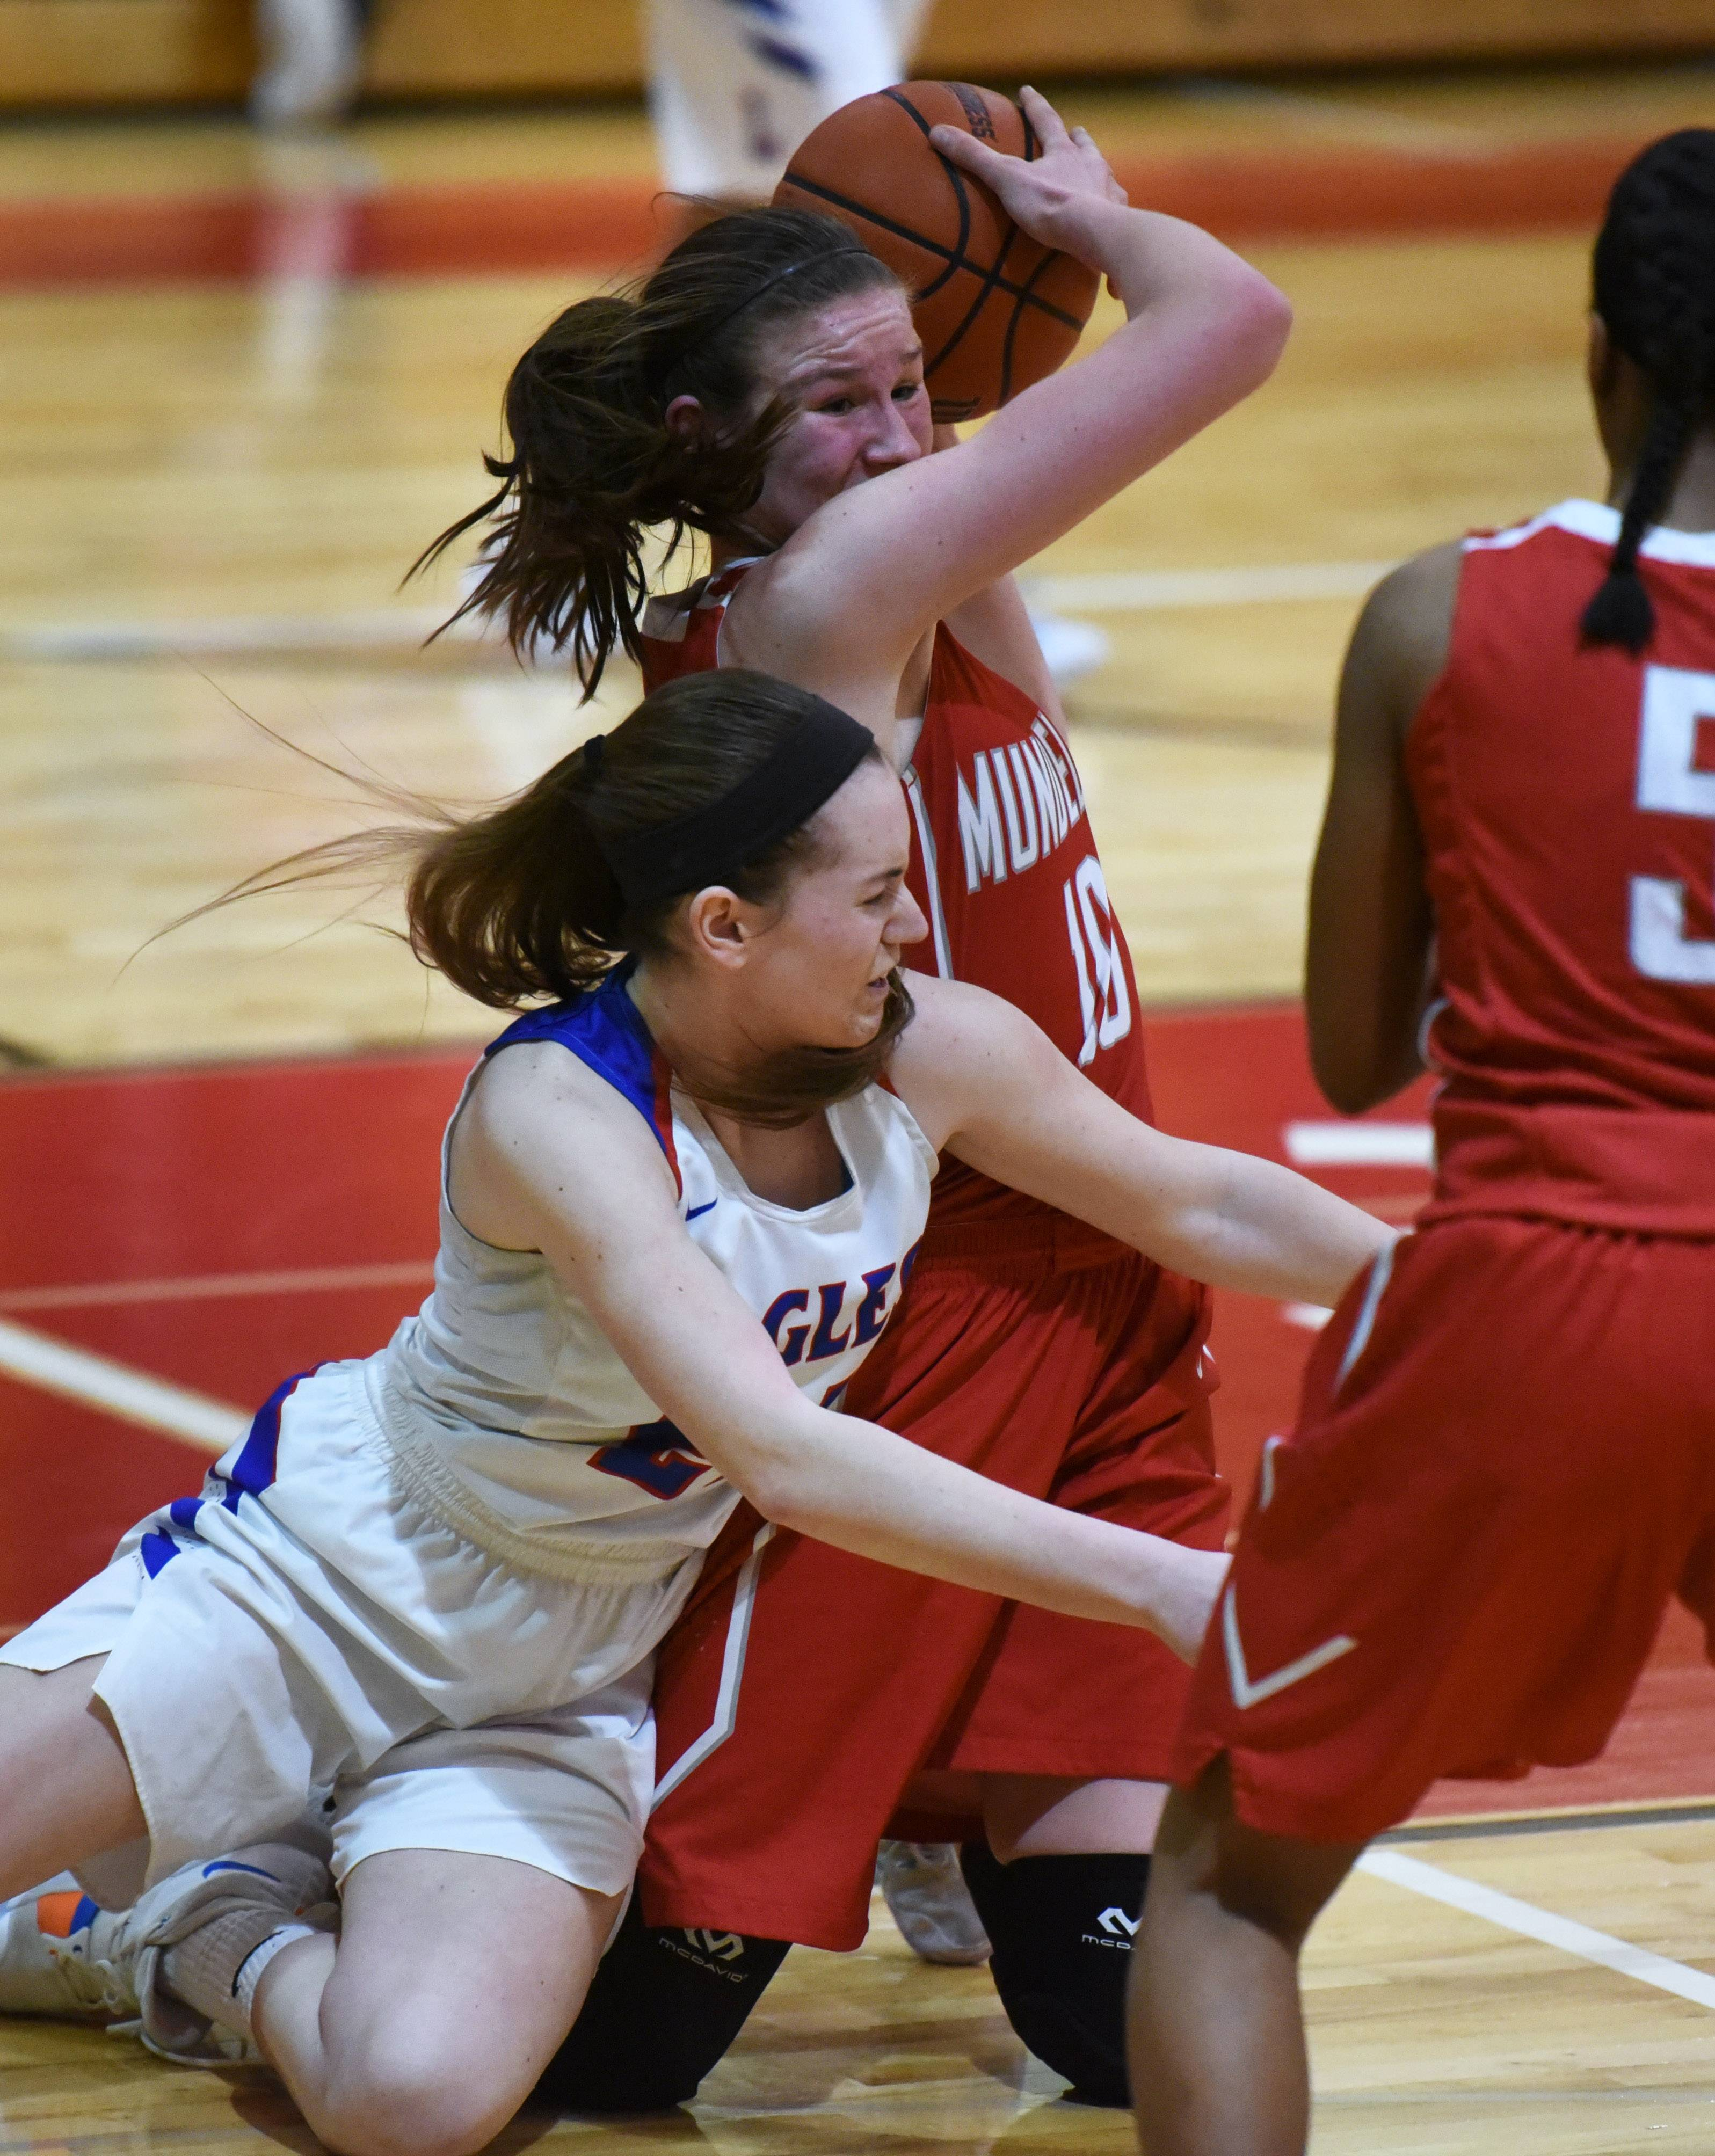 Mundelein's Morgan Frank keeps the ball away from Lakes' Taylor Lehman during Monday's girls regional basketball game in Mundelein.